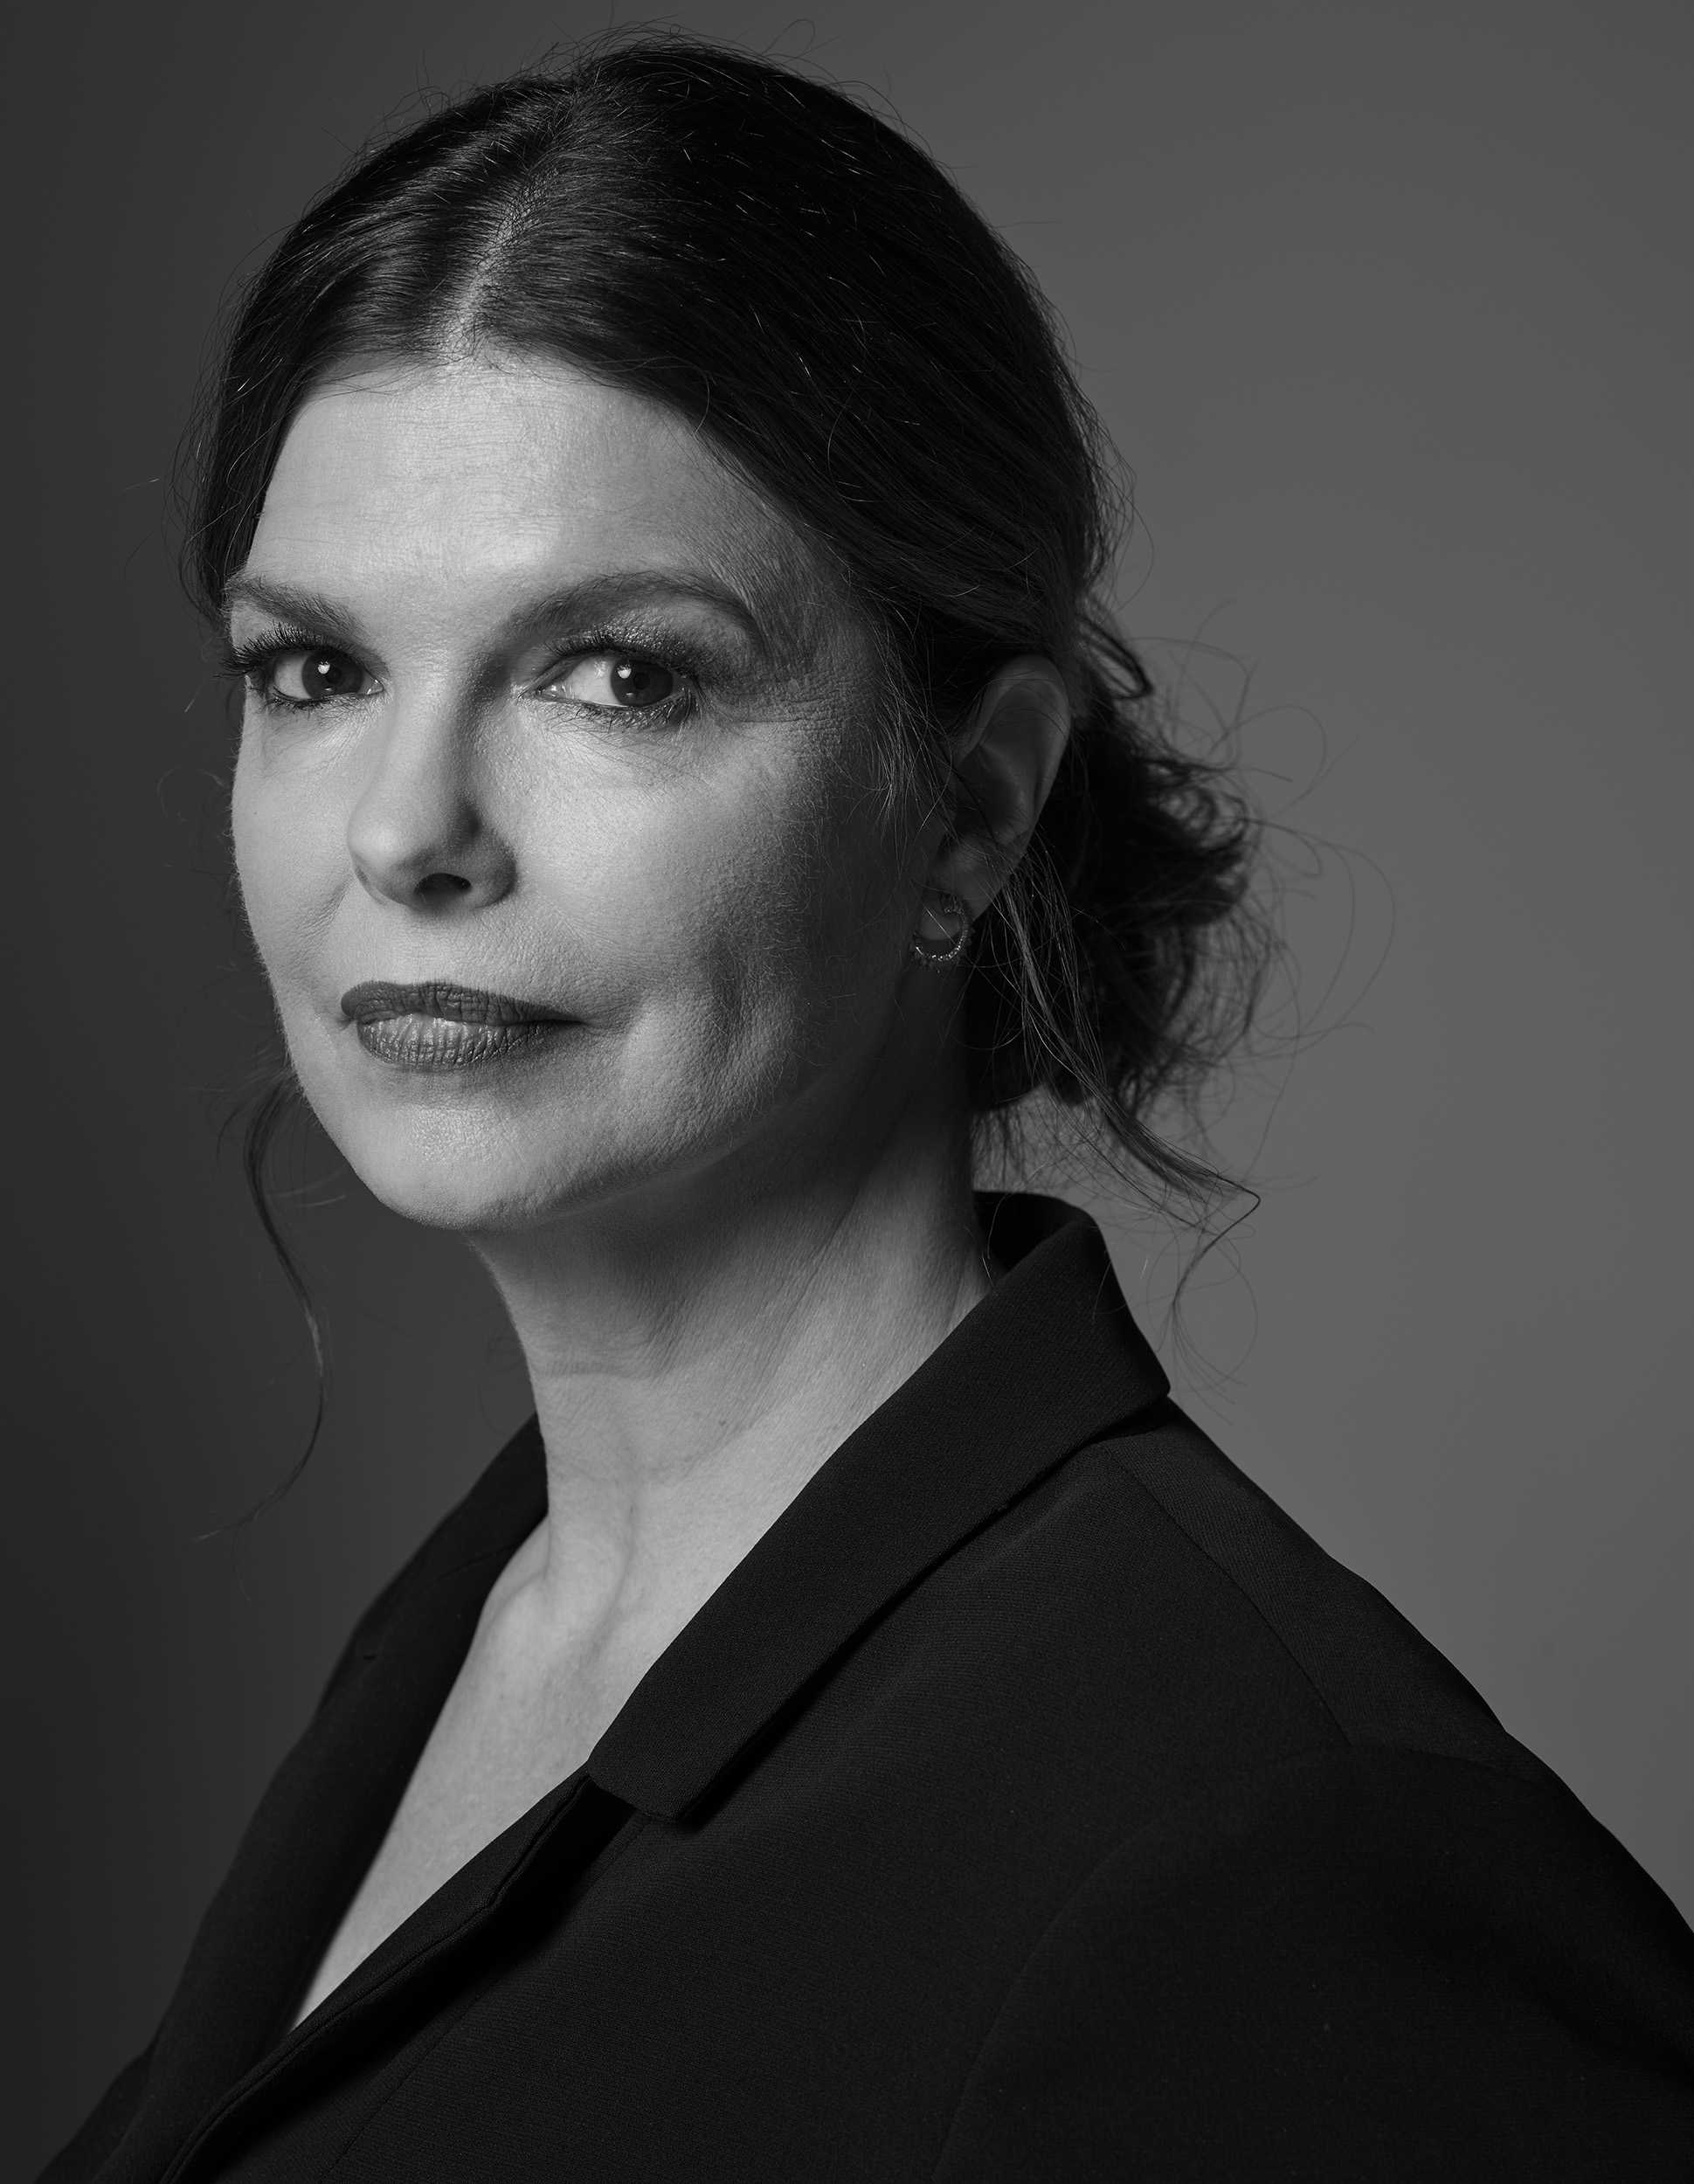 Jeanne-Tripplehorn-by-Robert-Ascroft